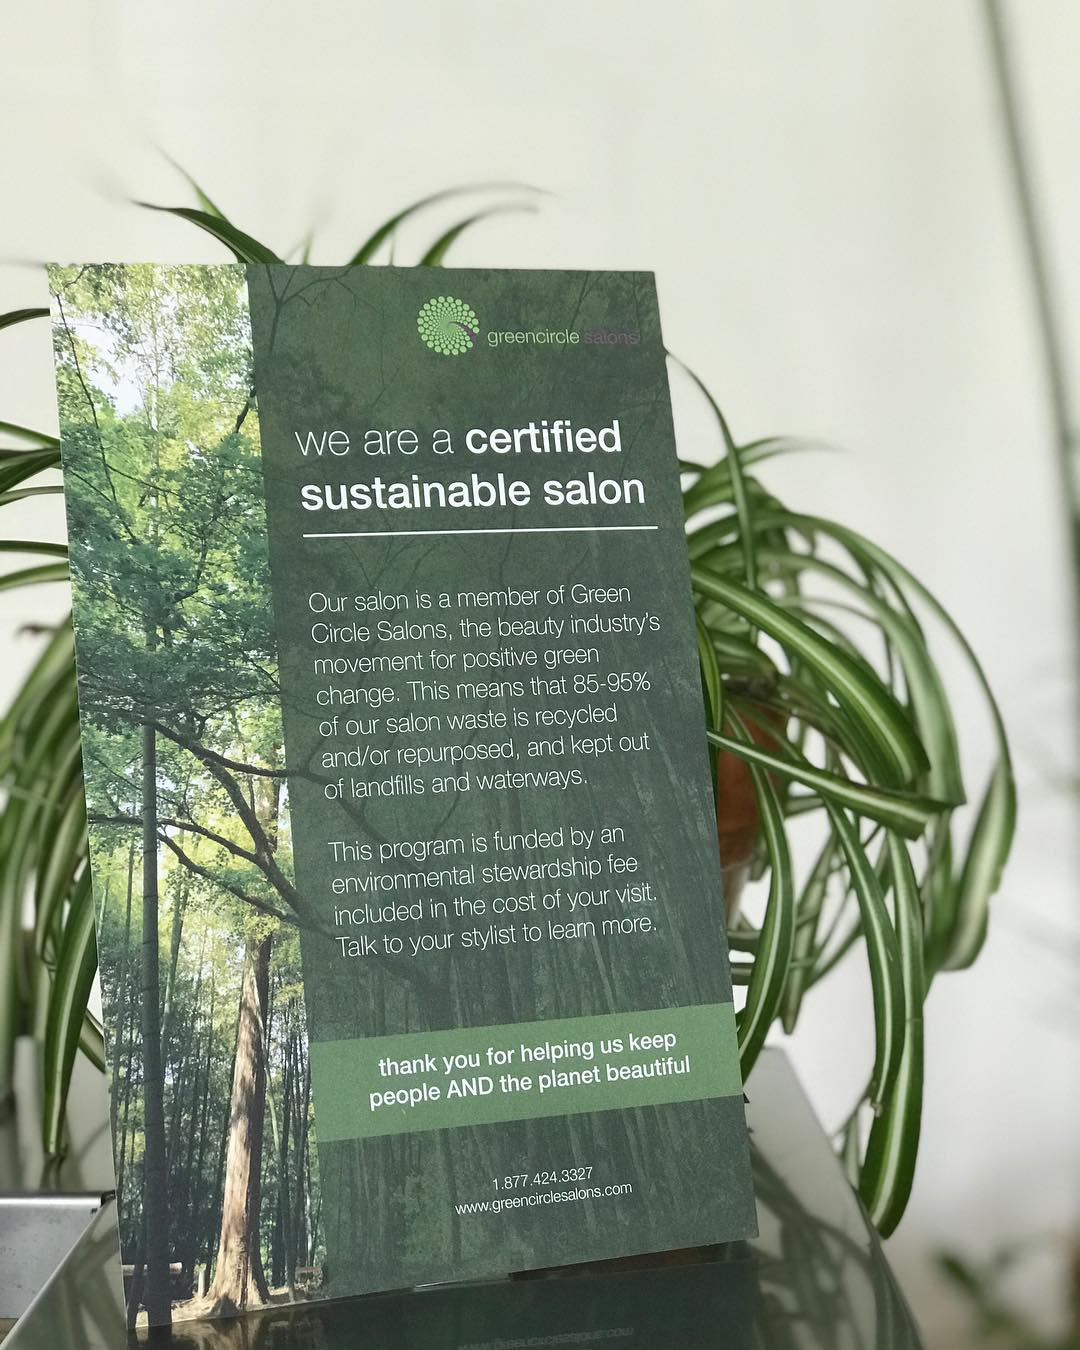 Certified Sustainable - We are proud to be members of @greencirclesalons. It is long overdue that we take ownership + responsibility for the waste our industry ensues. What does this mean? It means that we will collect on a daily basis, ANYTHING recyclable and reusable...extra hair color, foils, hair clippings and the list goes on. Once we fill a large shipping box, we then ship it to Toronto and @greencirclesalons figures out where it goes from there. Follow us as we continue to figure out ways to better the surroundings around us. Together anything is possible!